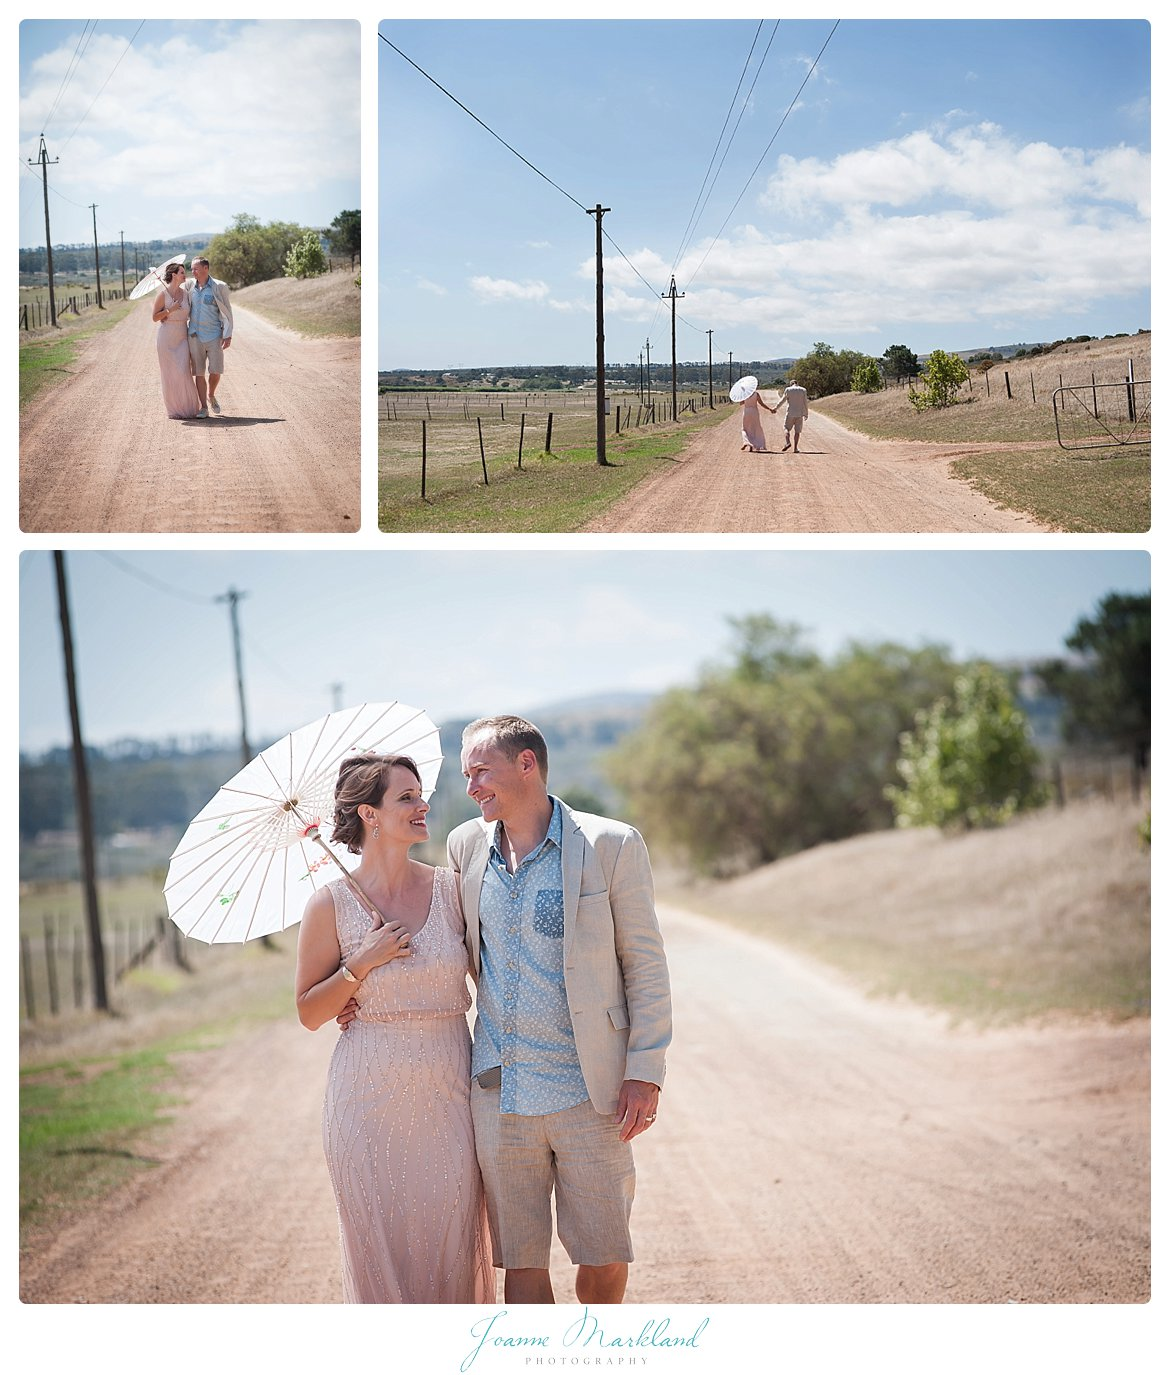 Grootepost-wedding-photography-joanne-markland-037